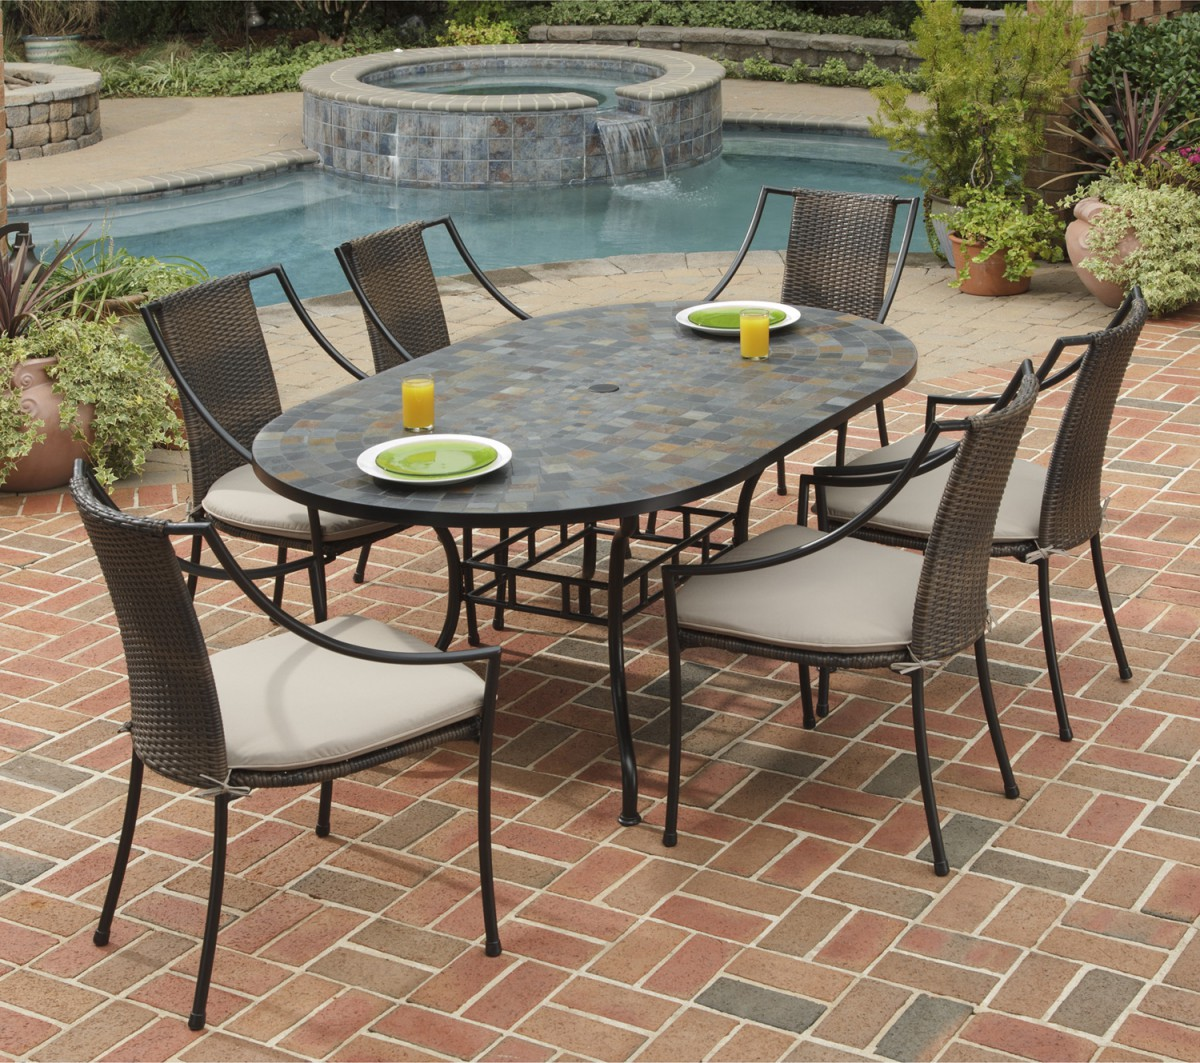 Home styles stone harbor oval outdoor dining table patio for Outdoor patio dining